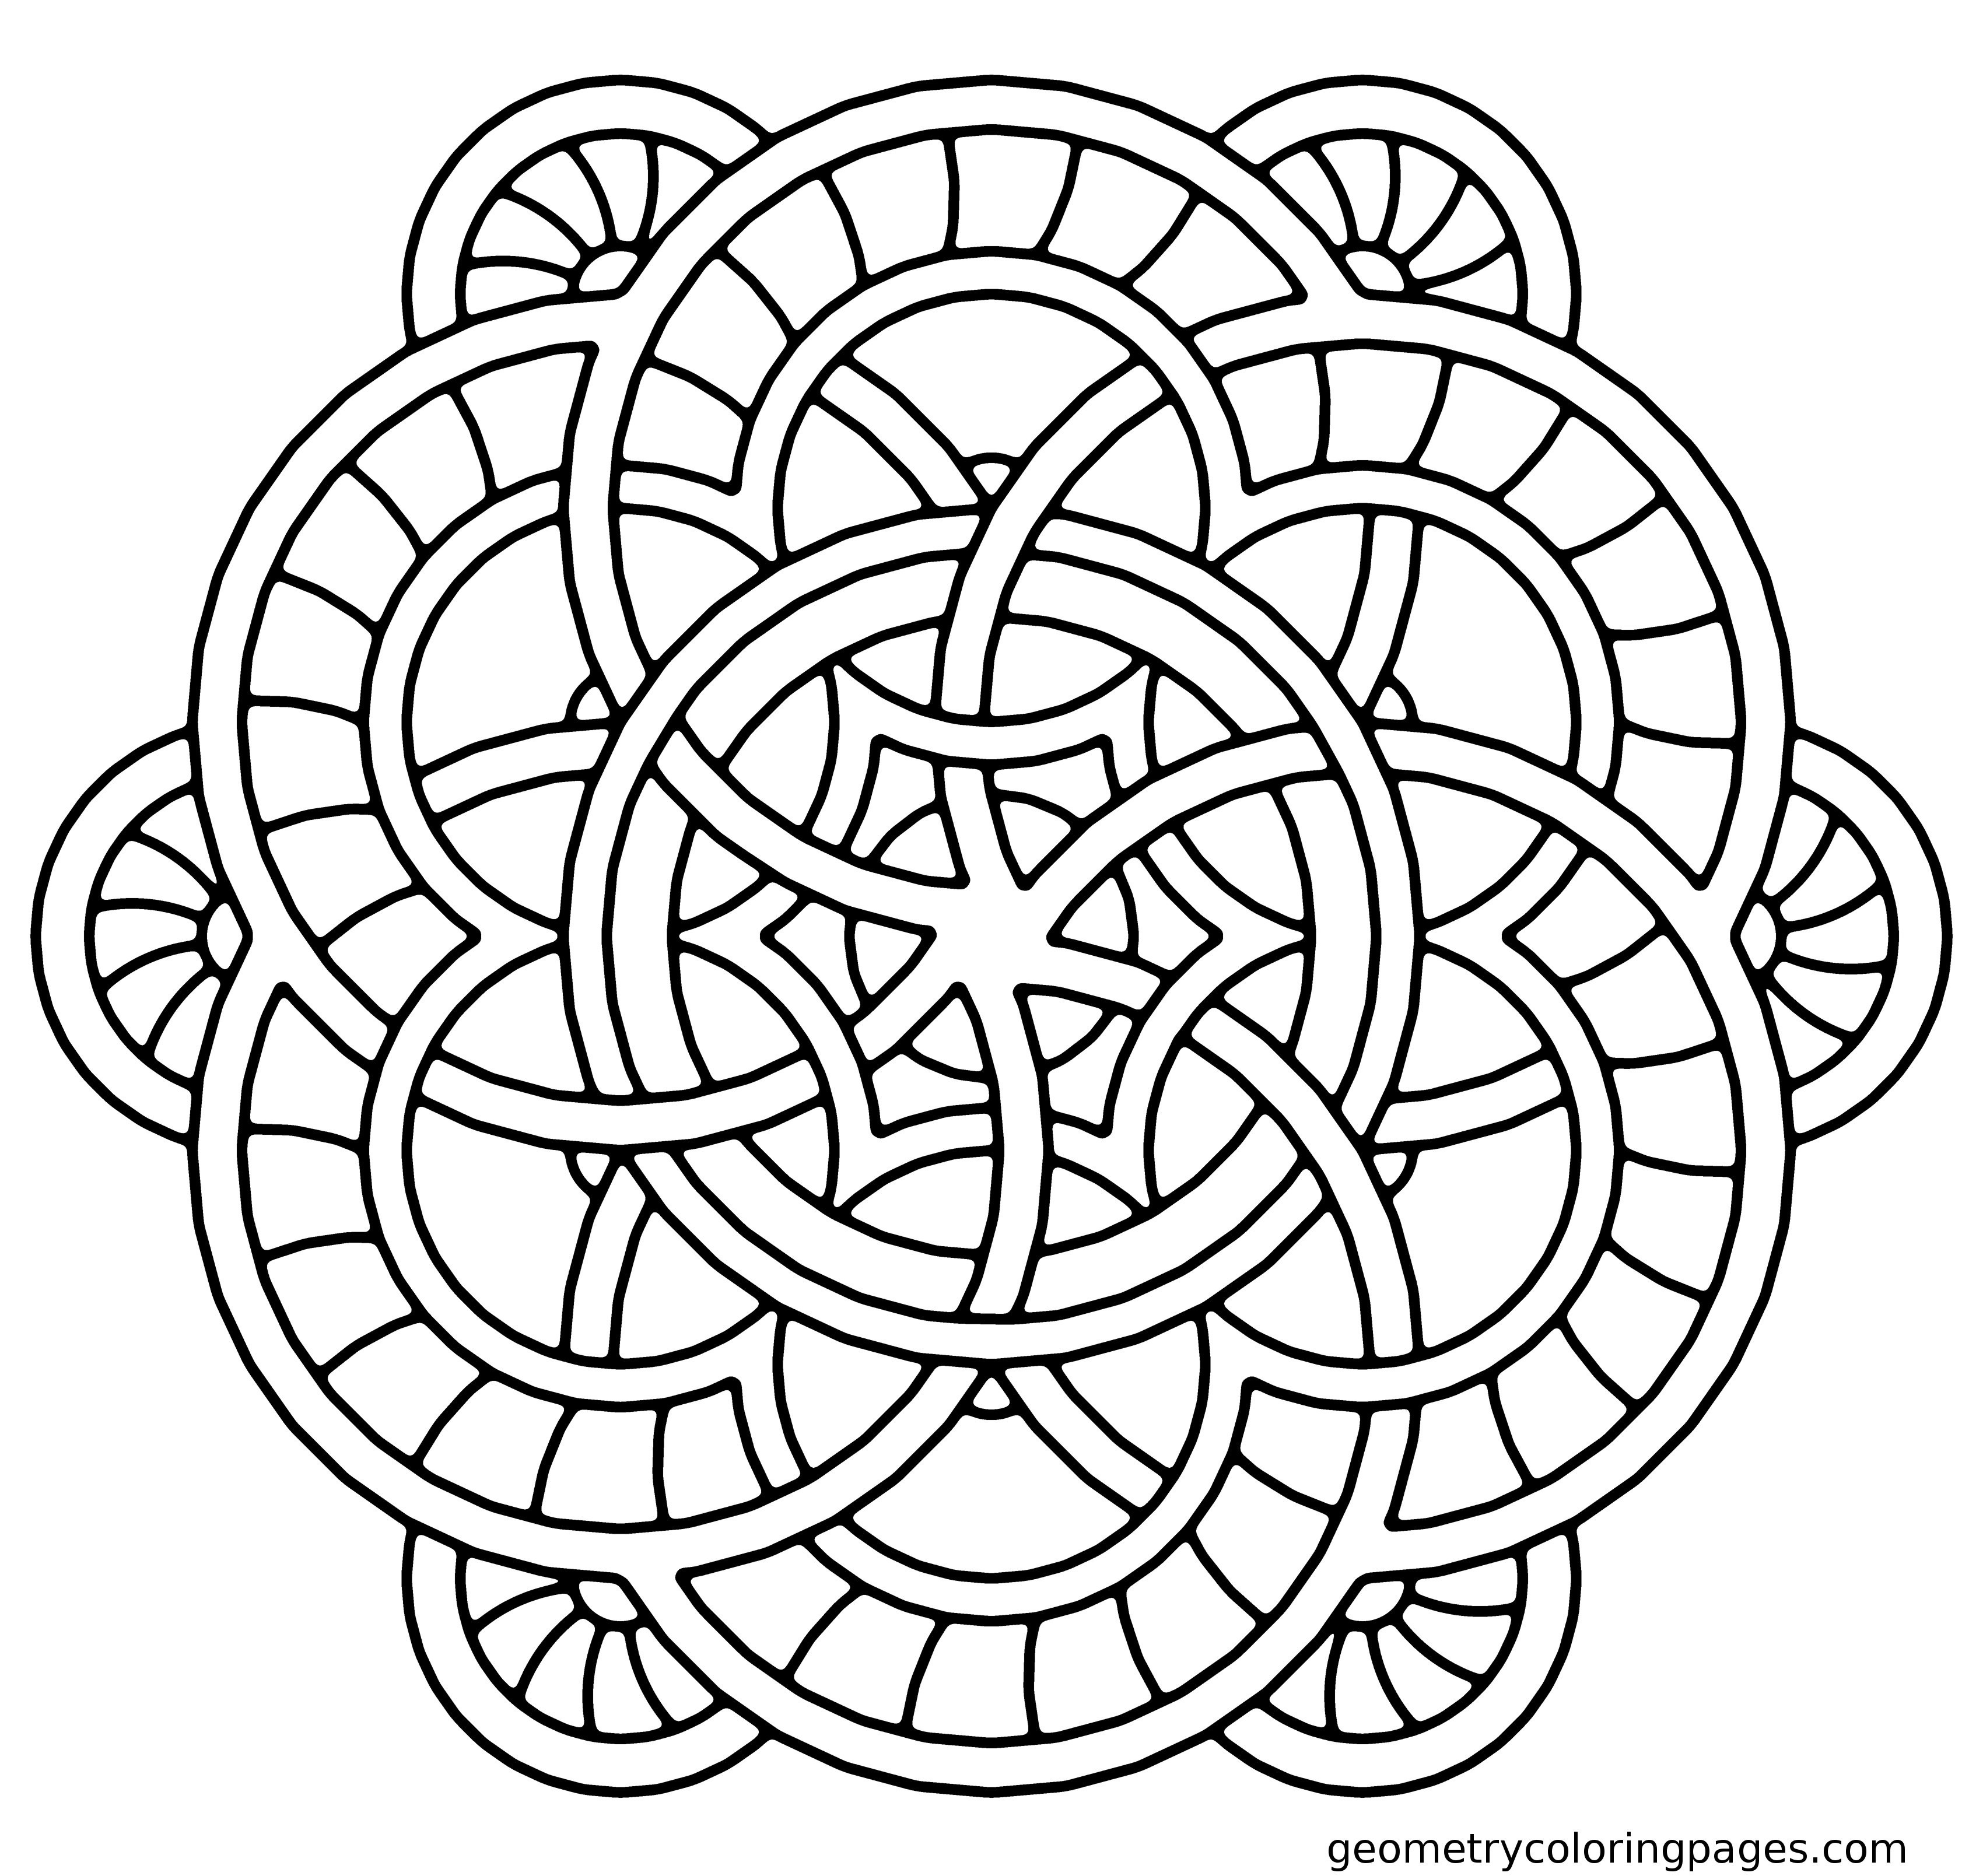 Coloring ~ Mandalas For Kids Photo Inspirations Free Printable - Free Mandalas To Colour In Printable